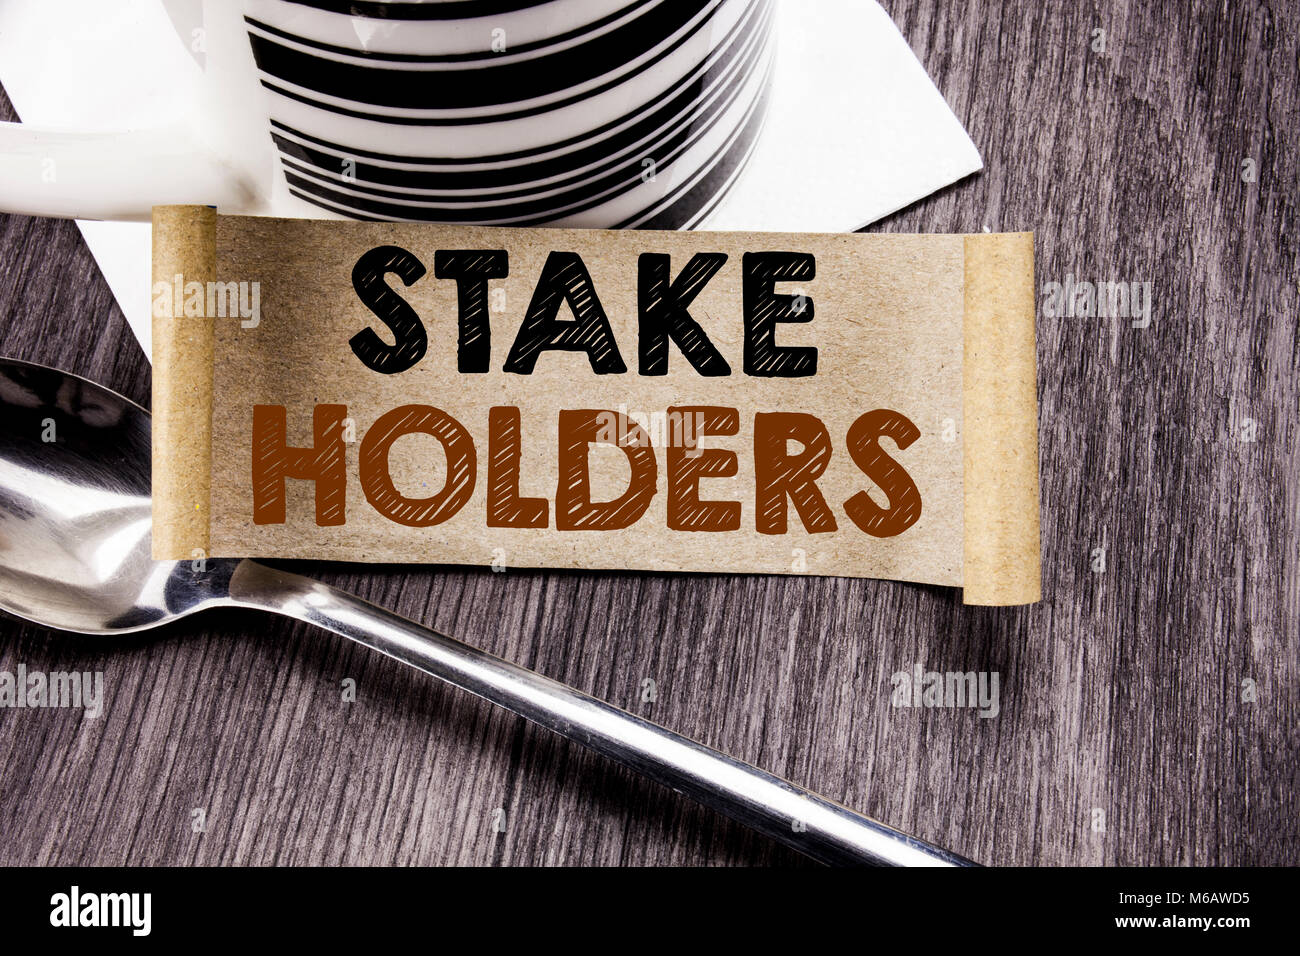 cadburys stake holders essay Mcdonalds stakeholders mcdonalds has many franchises around the world the first franchise was opened in 1967 in canada over the years it has spread all around the world and there are now more than 1000 franchises around the globe.